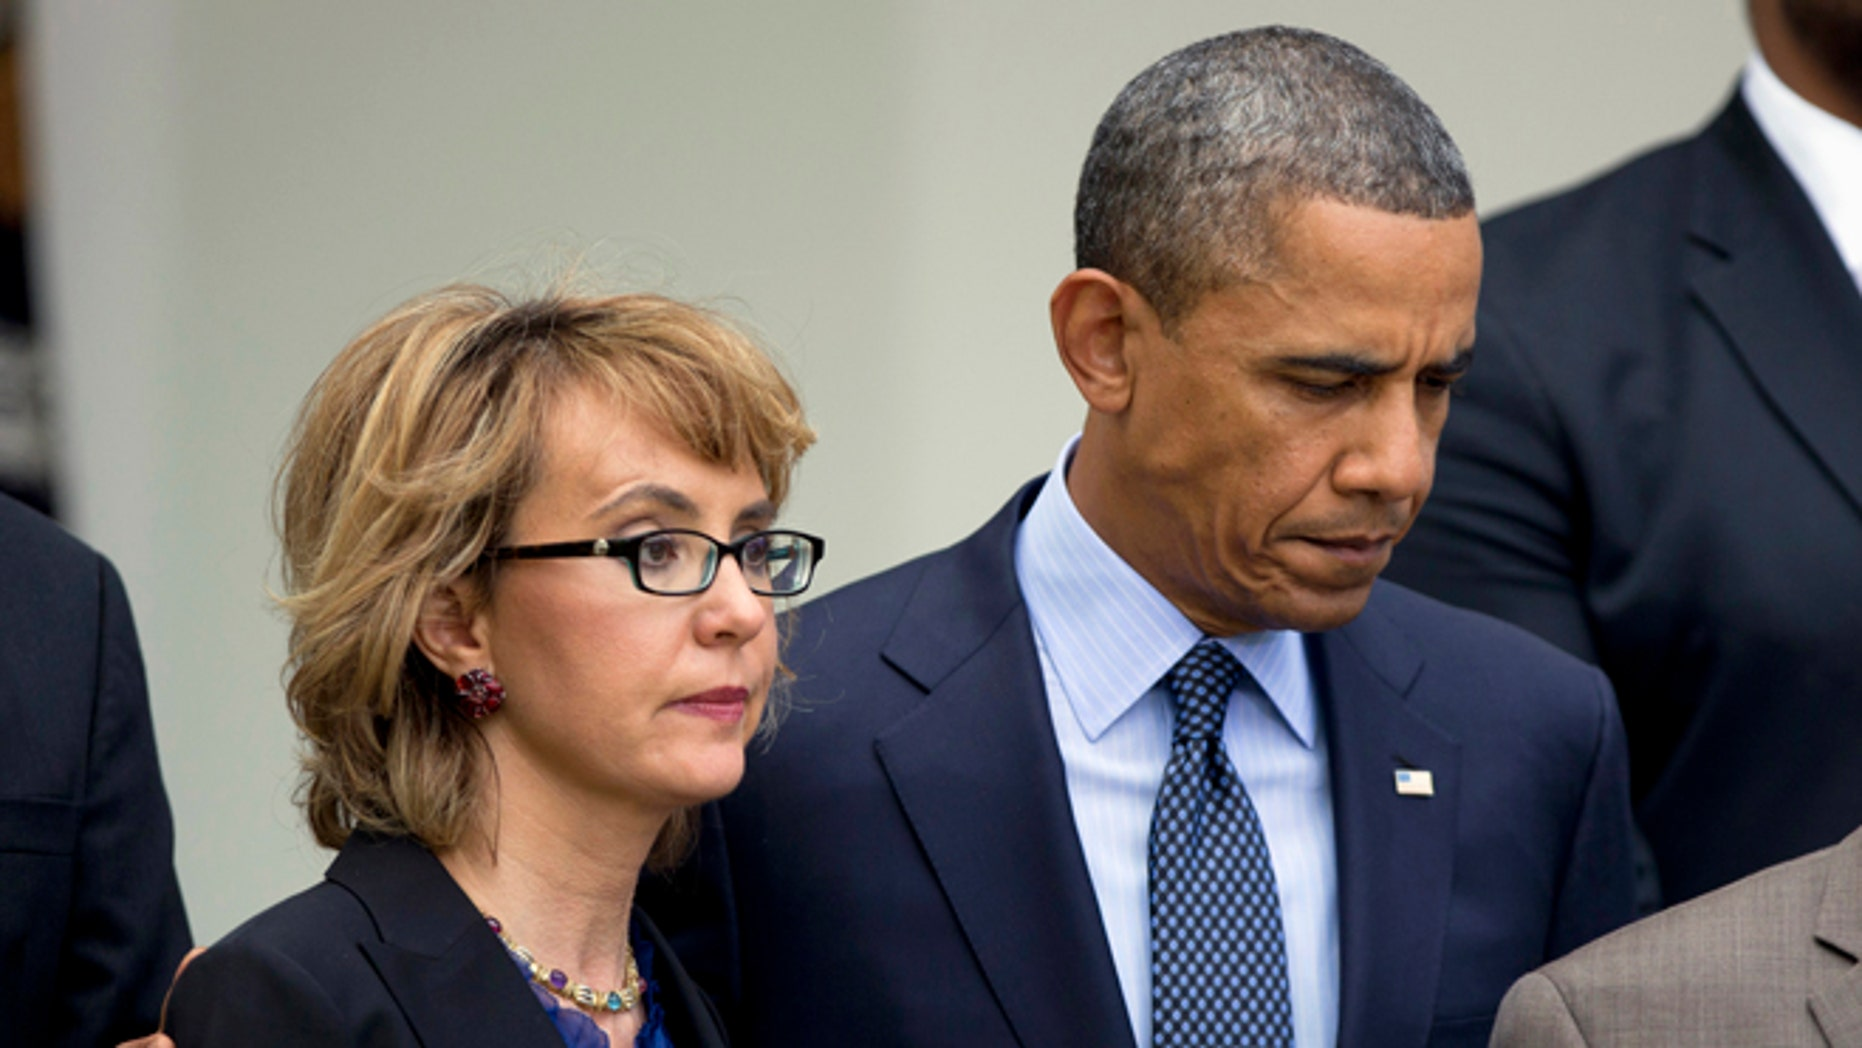 April 17, 2013: President Obama puts his arm around former Arizona Rep. Gabrielle Giffords before speaking in the Rose Garden at the White House in Washington about measures to reduce gun violence.